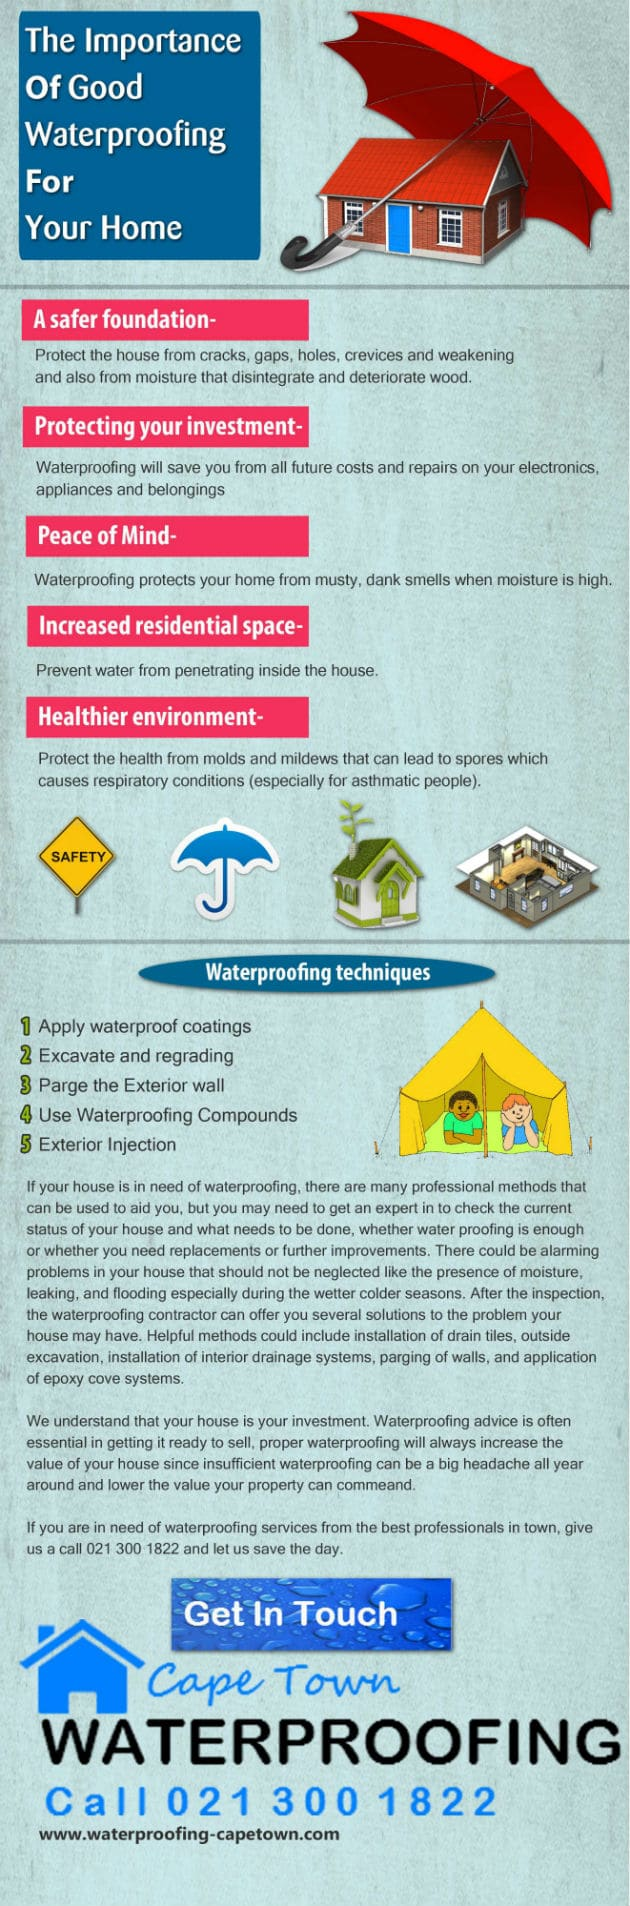 Infographic Image waterproofing Cape Town